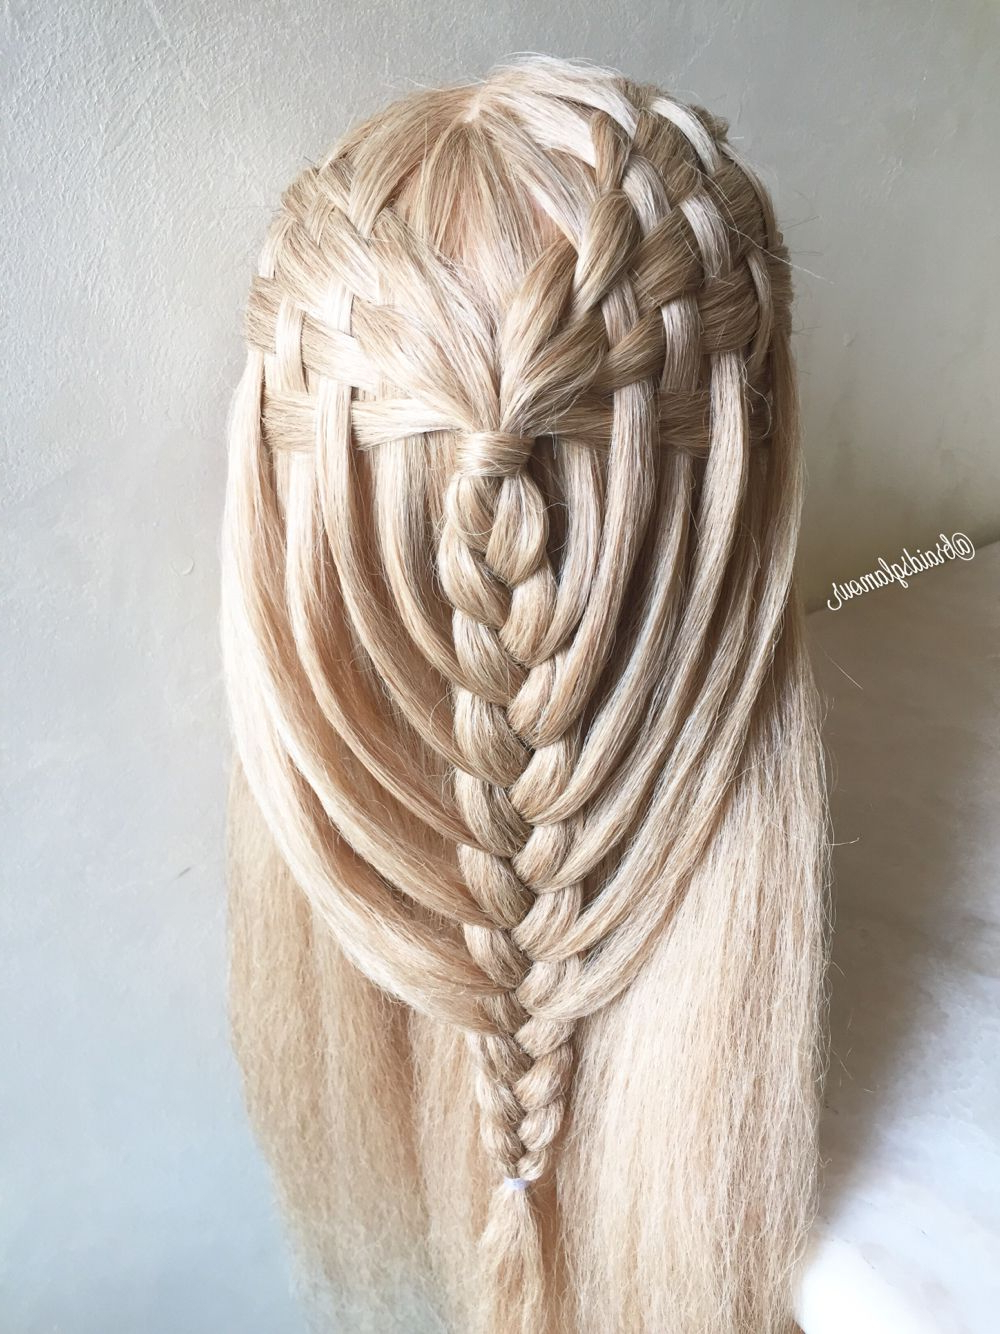 Famous Braids And Bouffant Hairstyles Pertaining To Bouffant Hair Short (View 20 of 20)